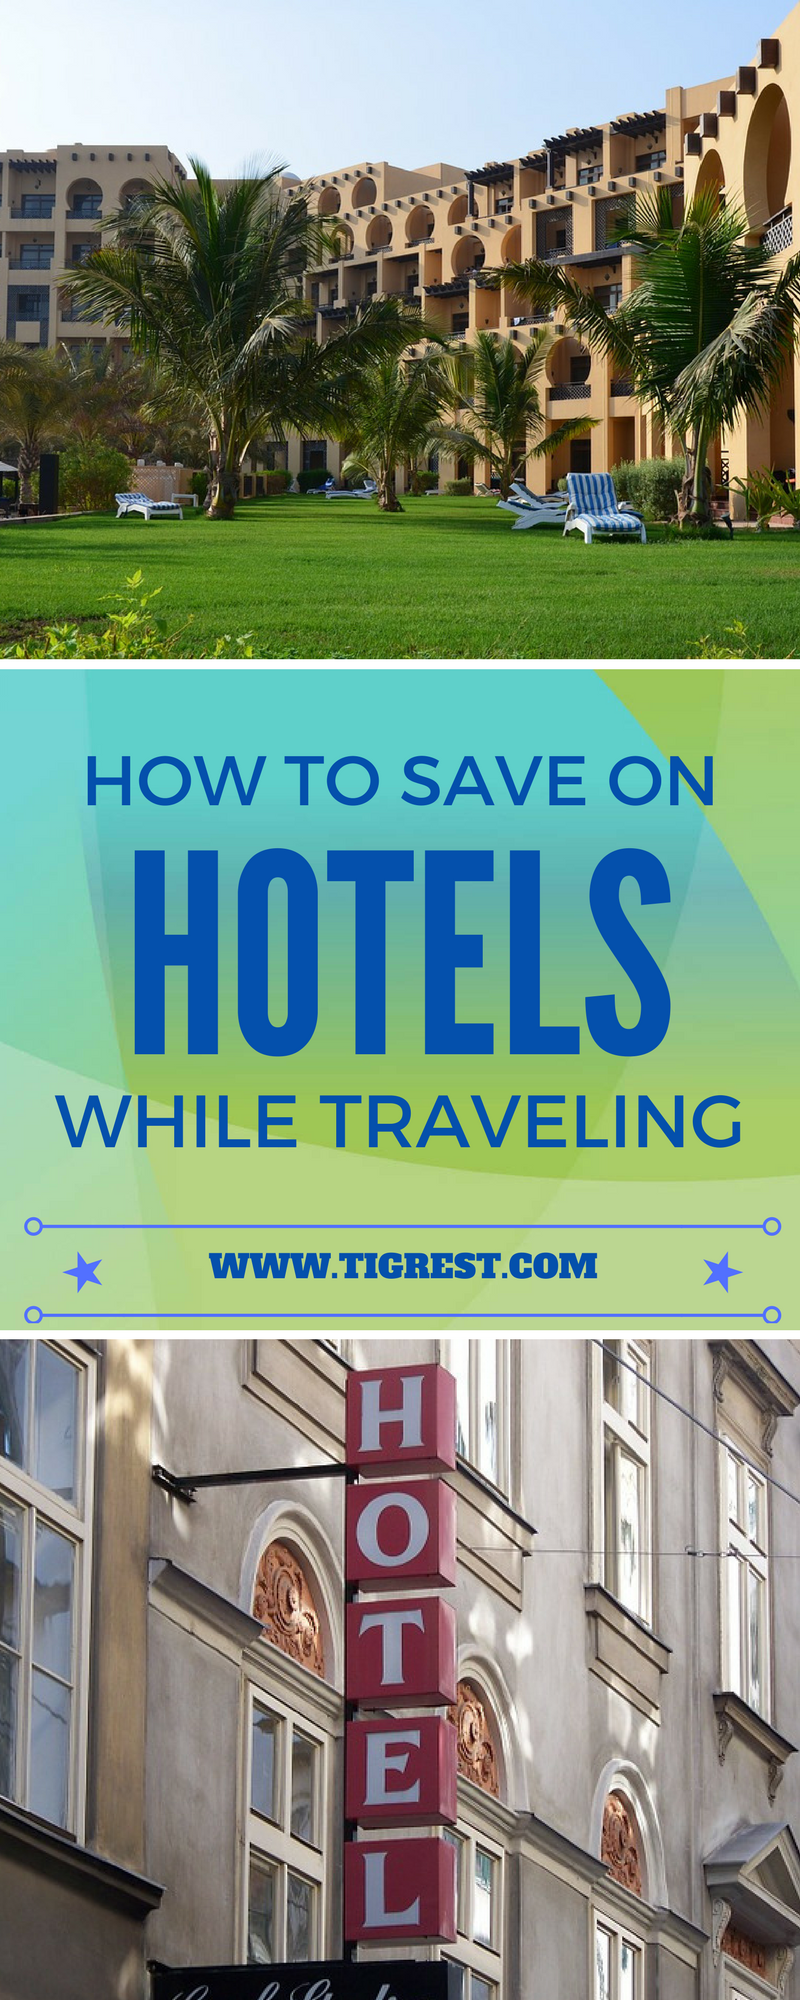 How to get hotel discounts and negotiate better rates | Cheapest ...